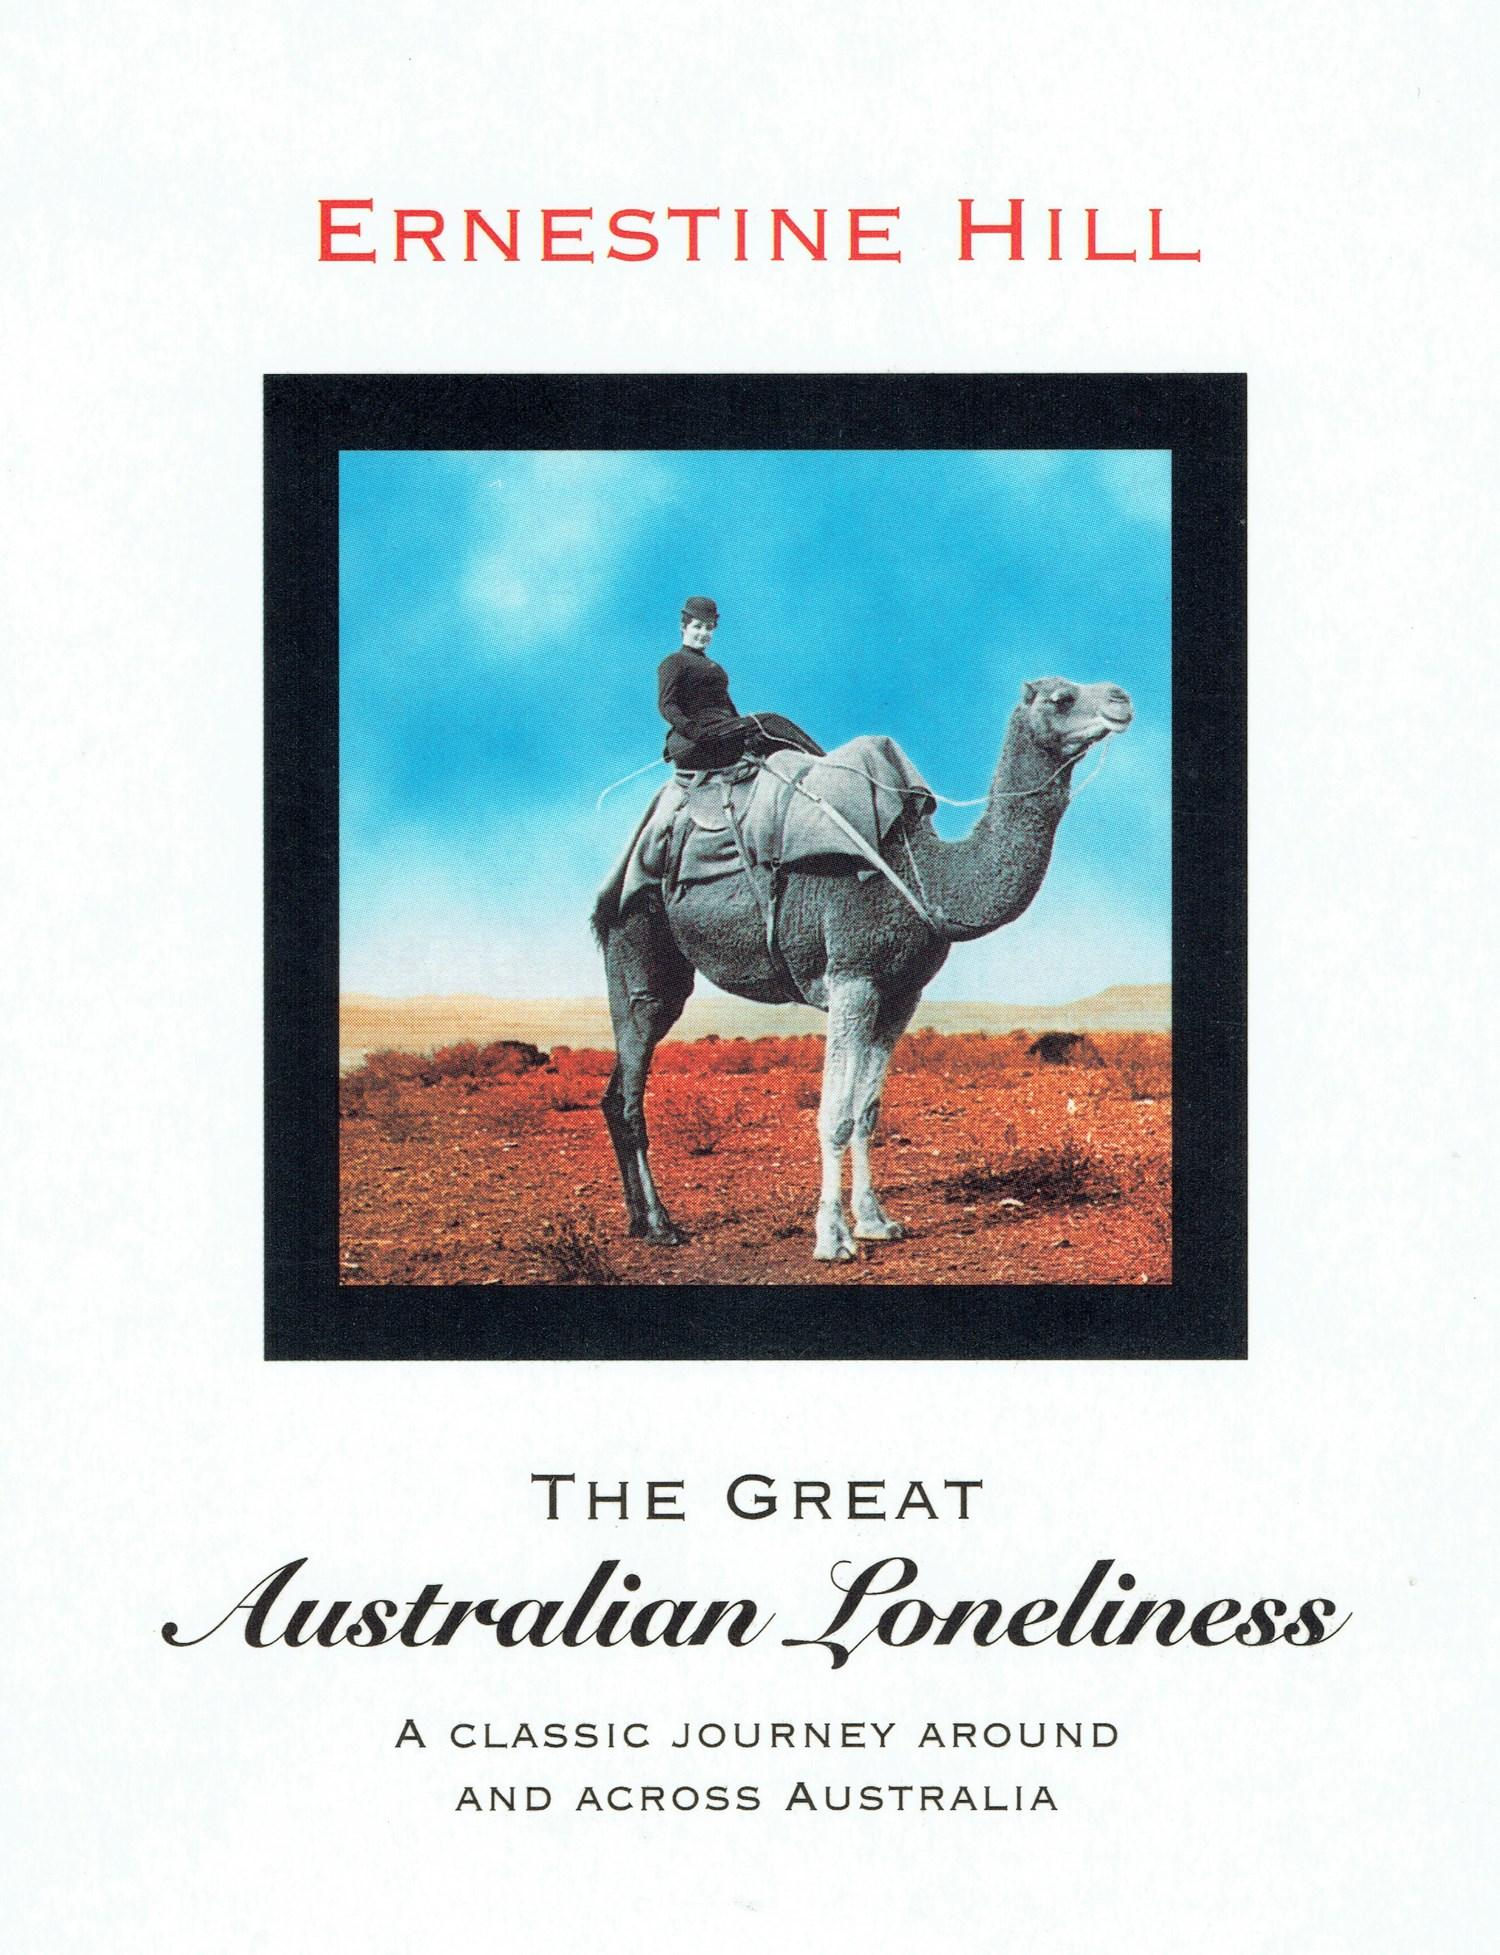 The Great Australian Loneliness